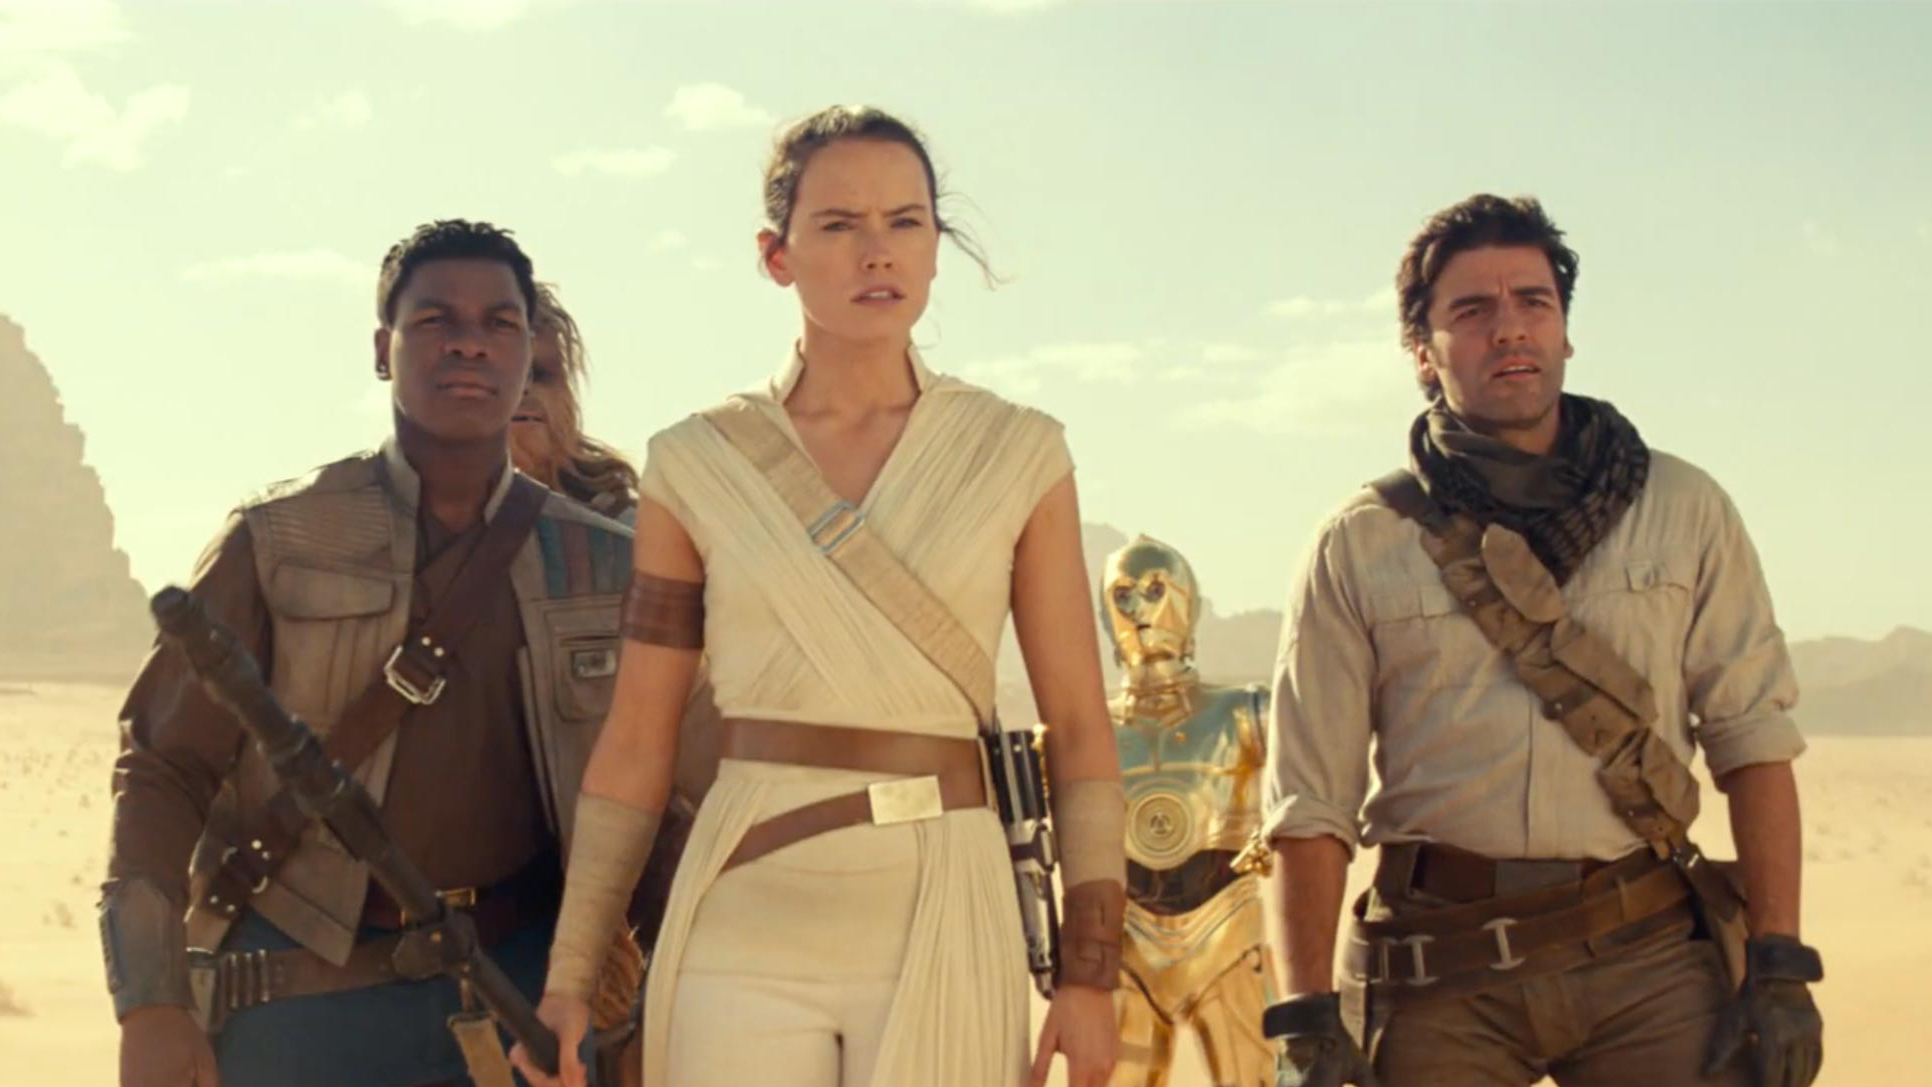 Star Wars Episode IX: The Rise of Skywalker screen grabCR: Lucasfilm